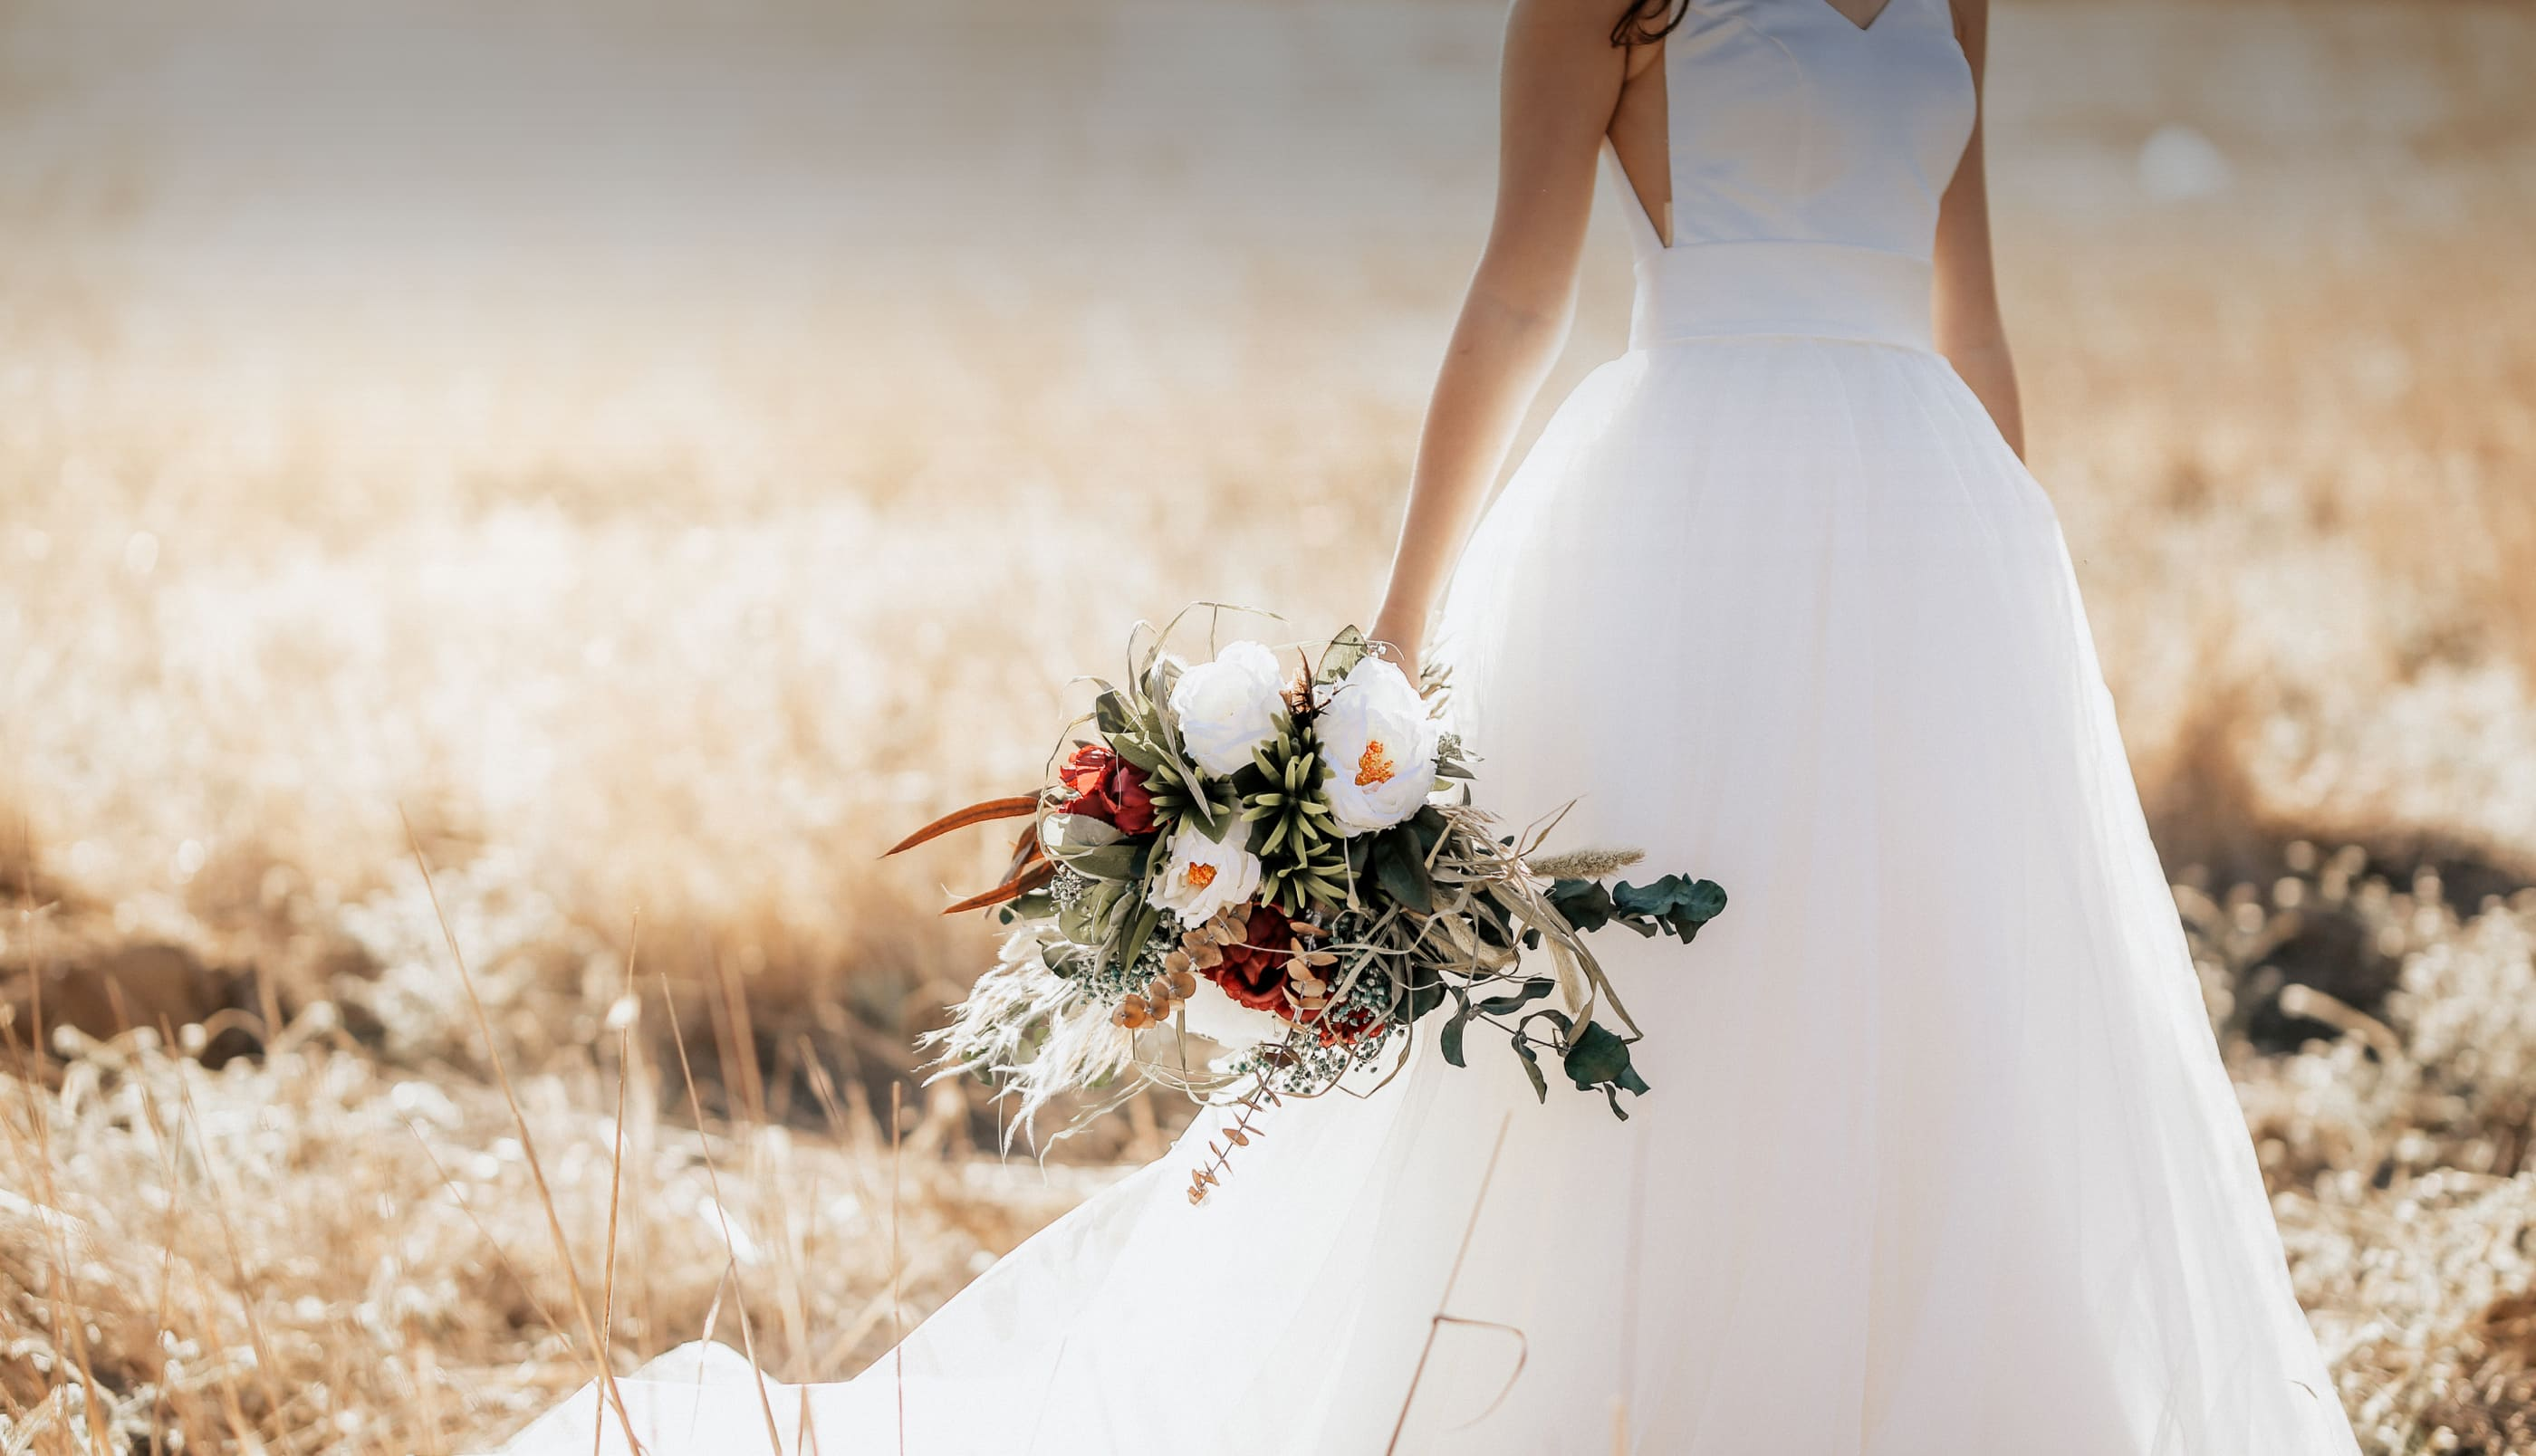 Dream Day Bridal   Home Page